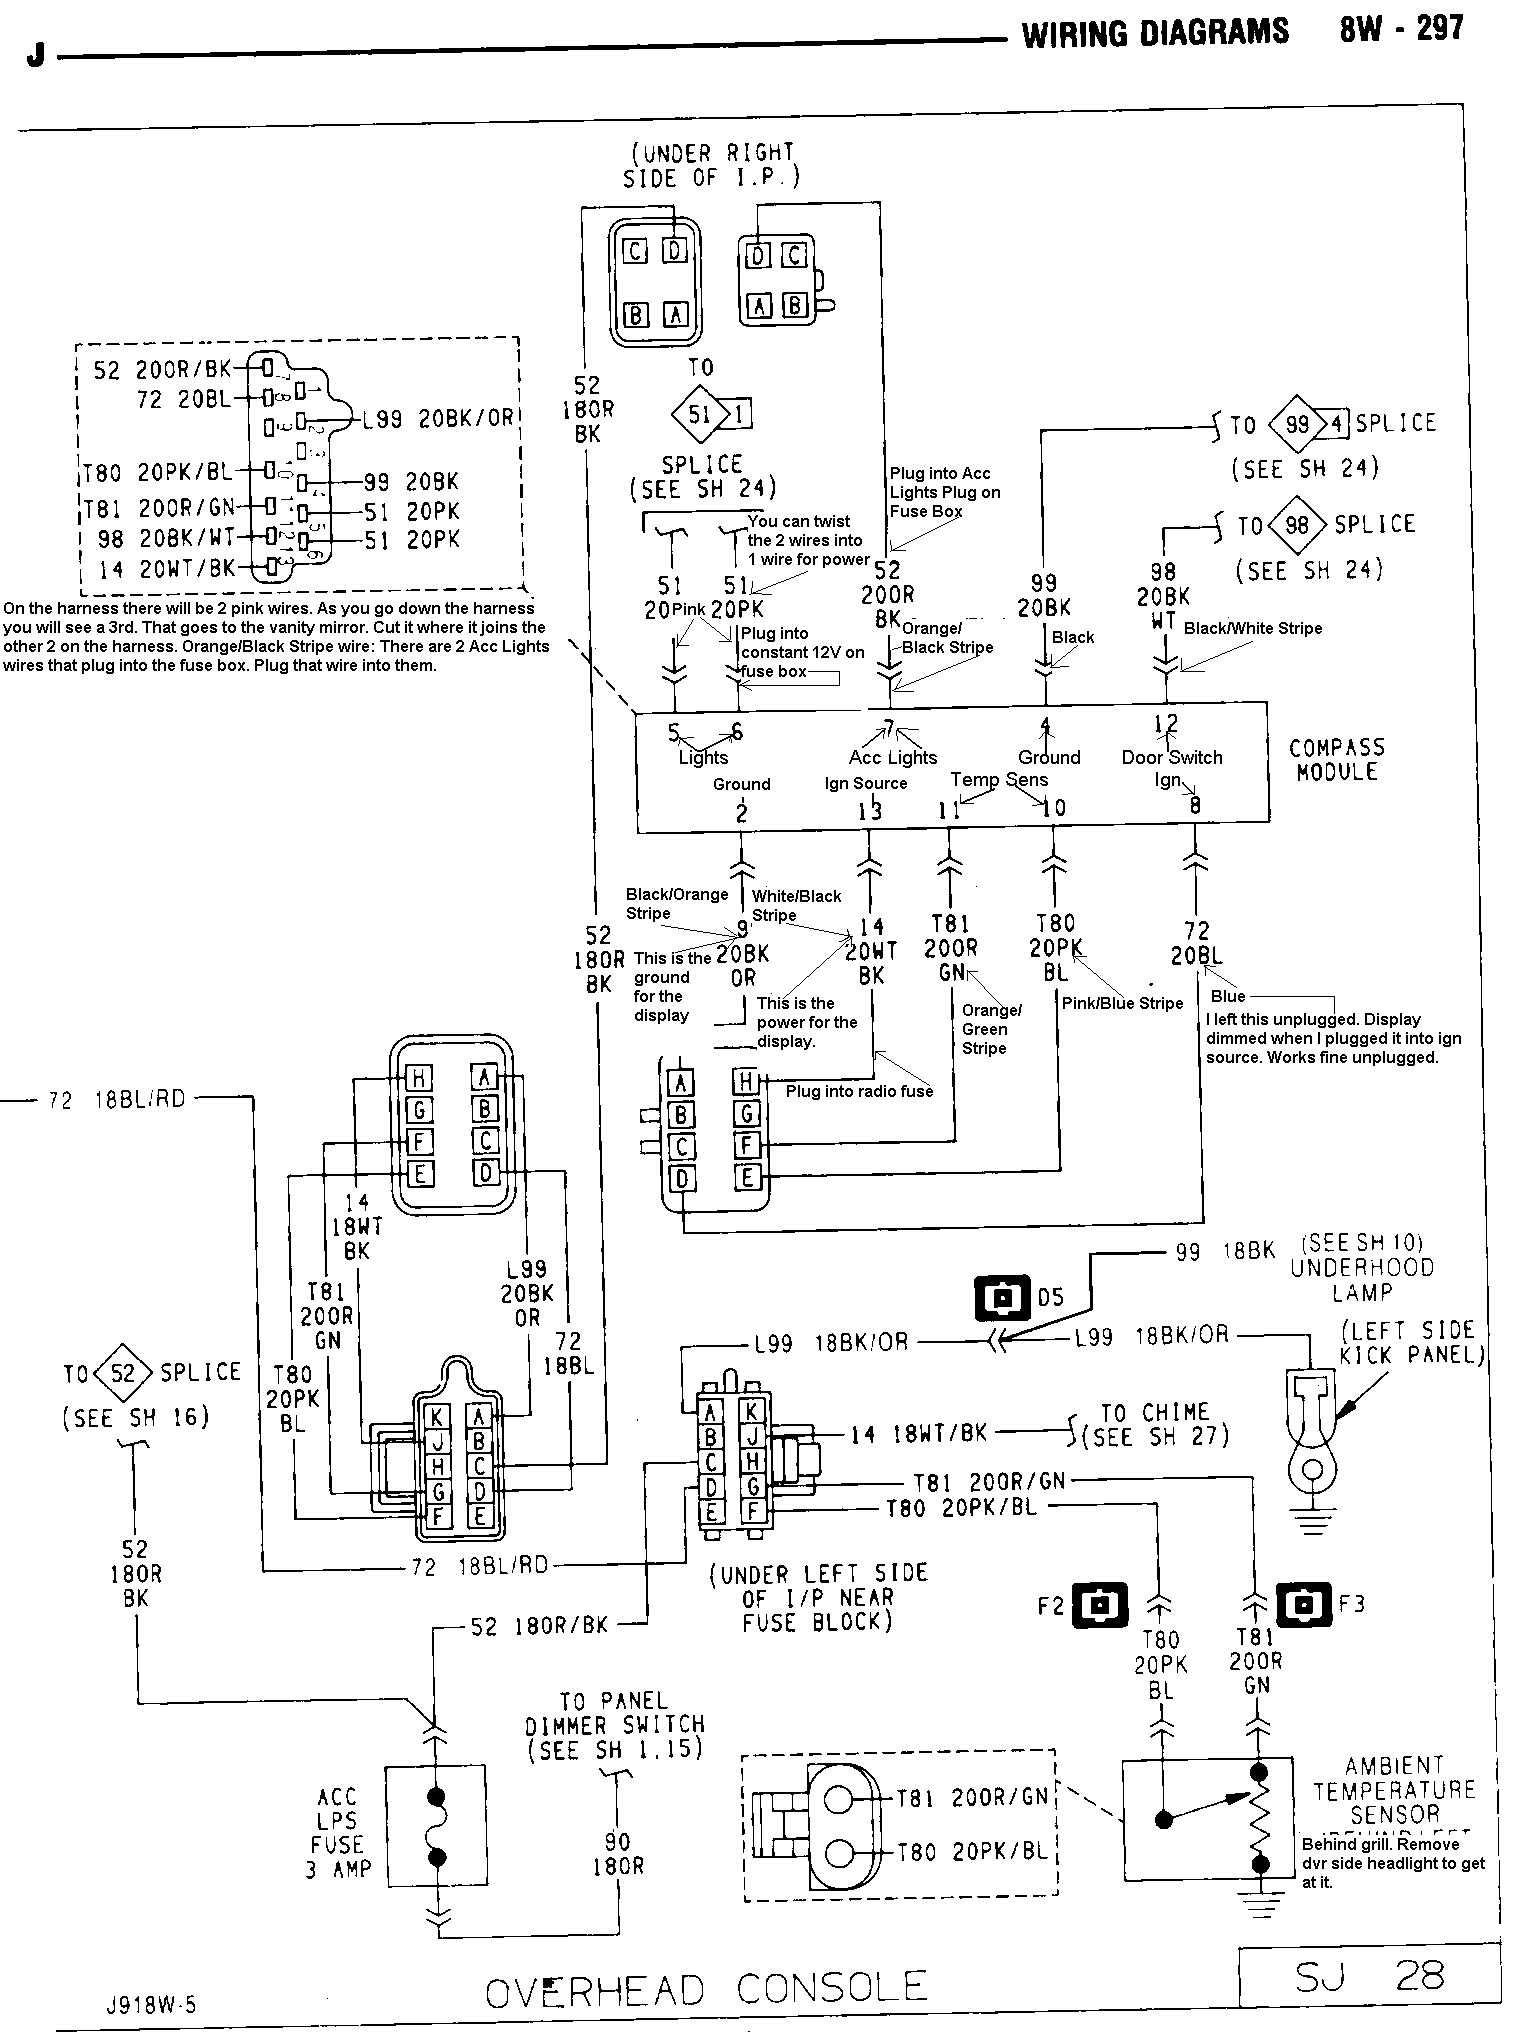 91consolediagrammodified tom 'oljeep' collins fsj wiring page jeep cherokee overhead console wiring diagram at gsmportal.co